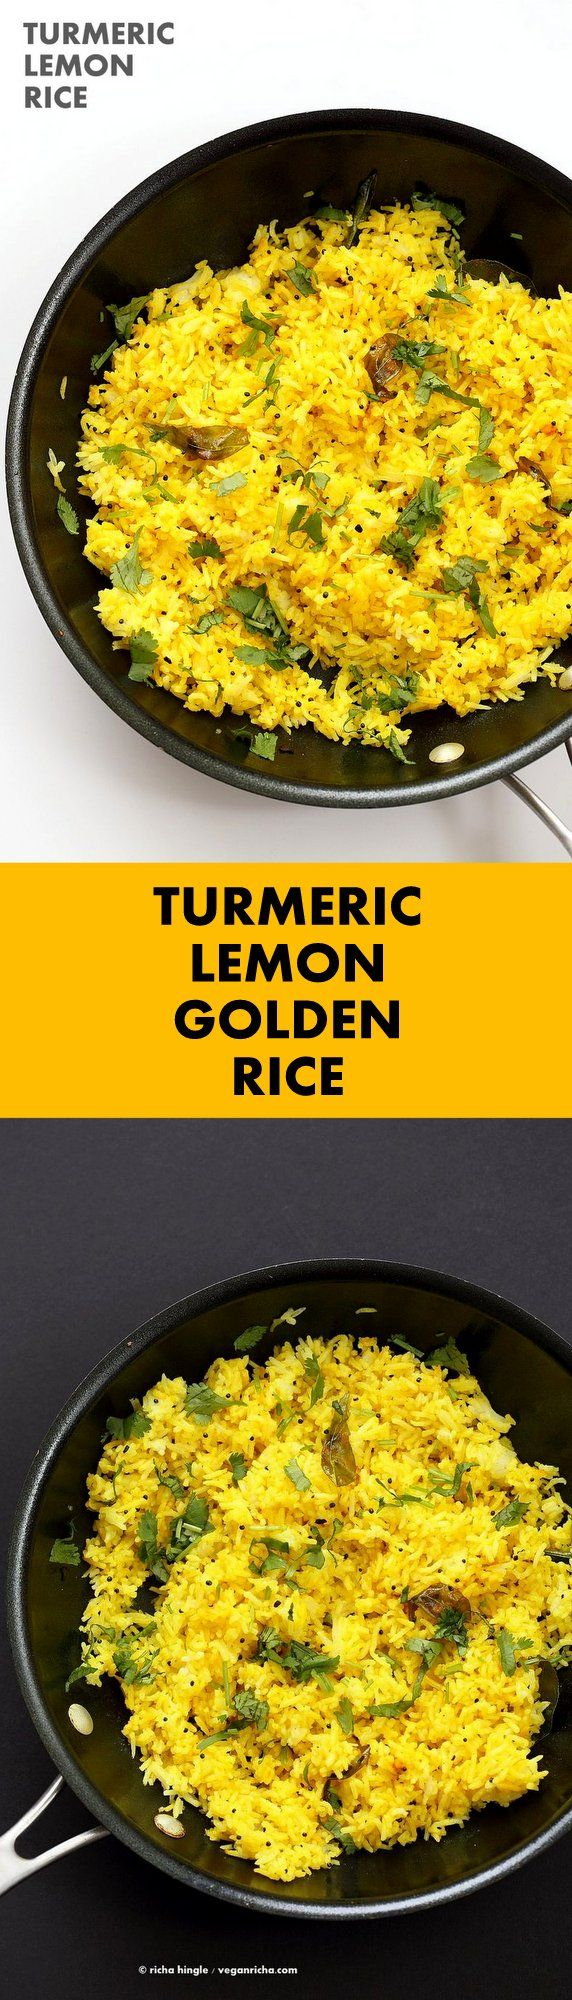 Turmeric Lemon Rice Recipe. Indian Golden Rice with turmeric, lemon and mustard seeds. Use cooked brown rice, quinoa or millet or couscous for variation. Easy Side. Vegan, Glutenfree, Soyfree Recipe | VeganRicha.com